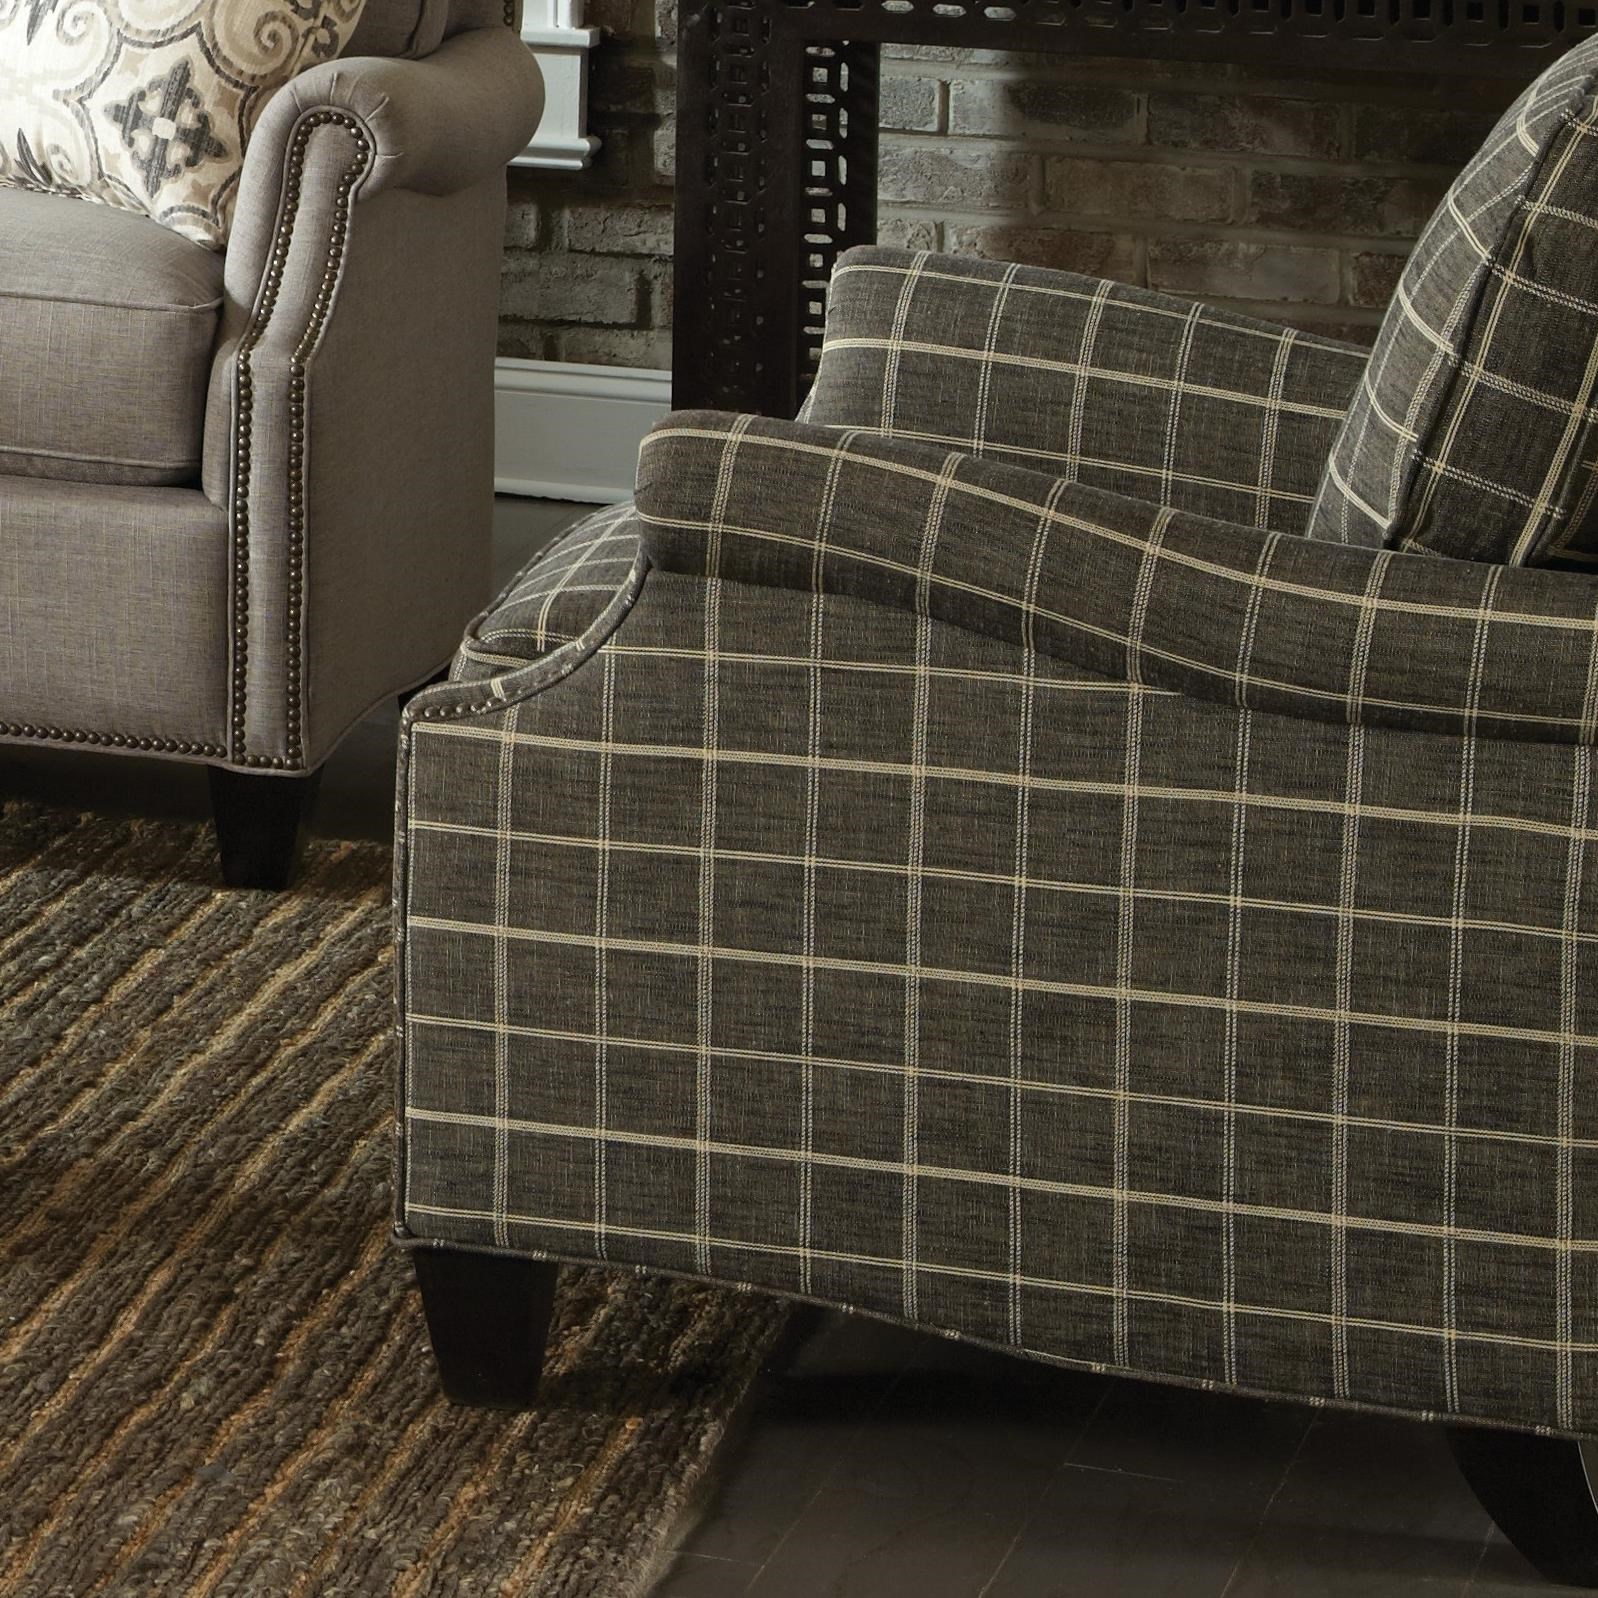 Transitional Chair with Clipped Corner Shape and Nailhead Trim